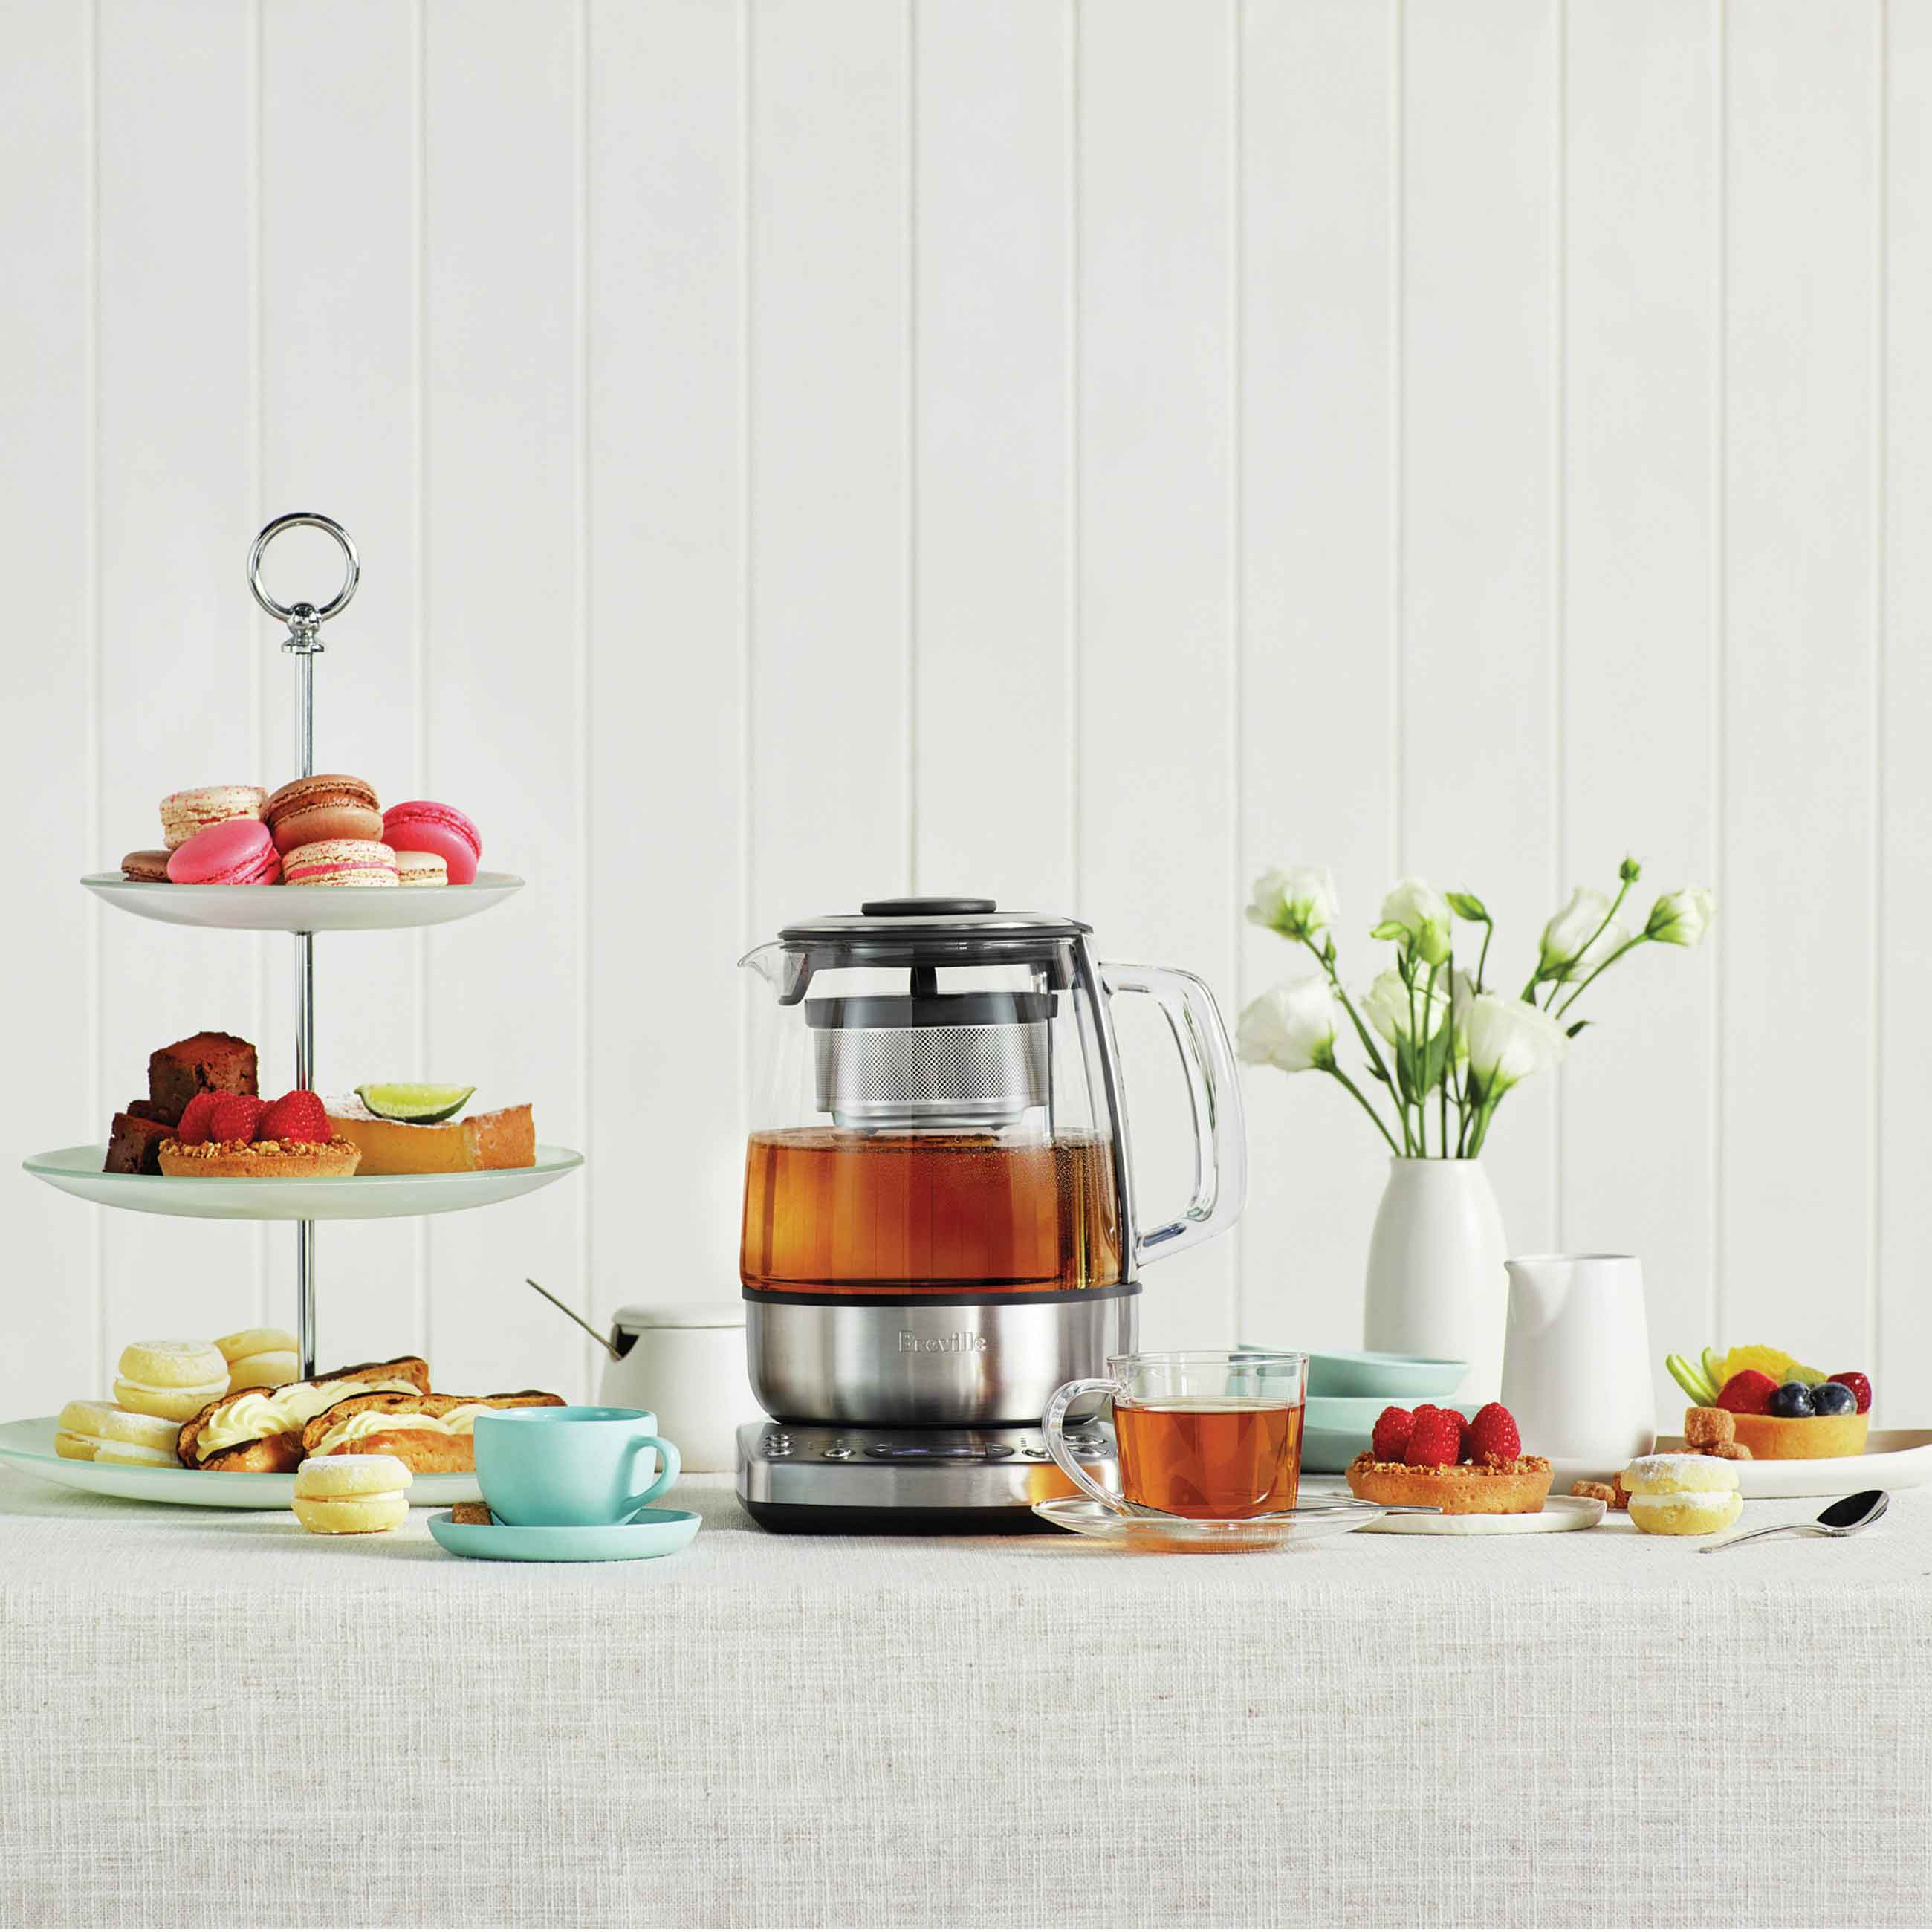 the Tea Maker Tea in Brushed Stainless Steel lifestyle